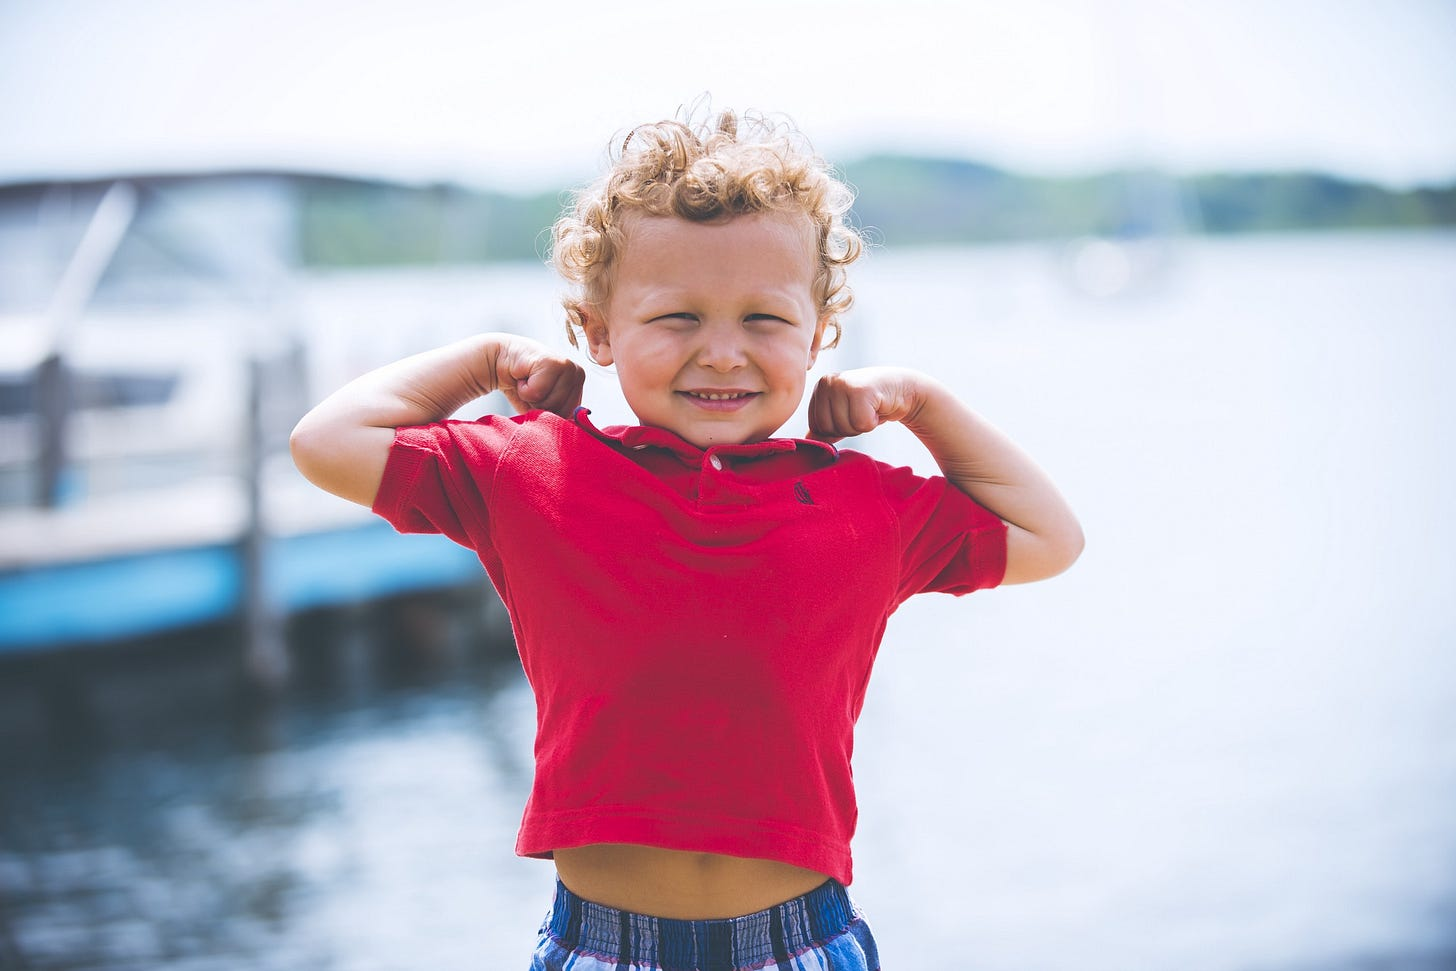 image of a strong small kid in a red t shirt for article by Larry G. Maguire